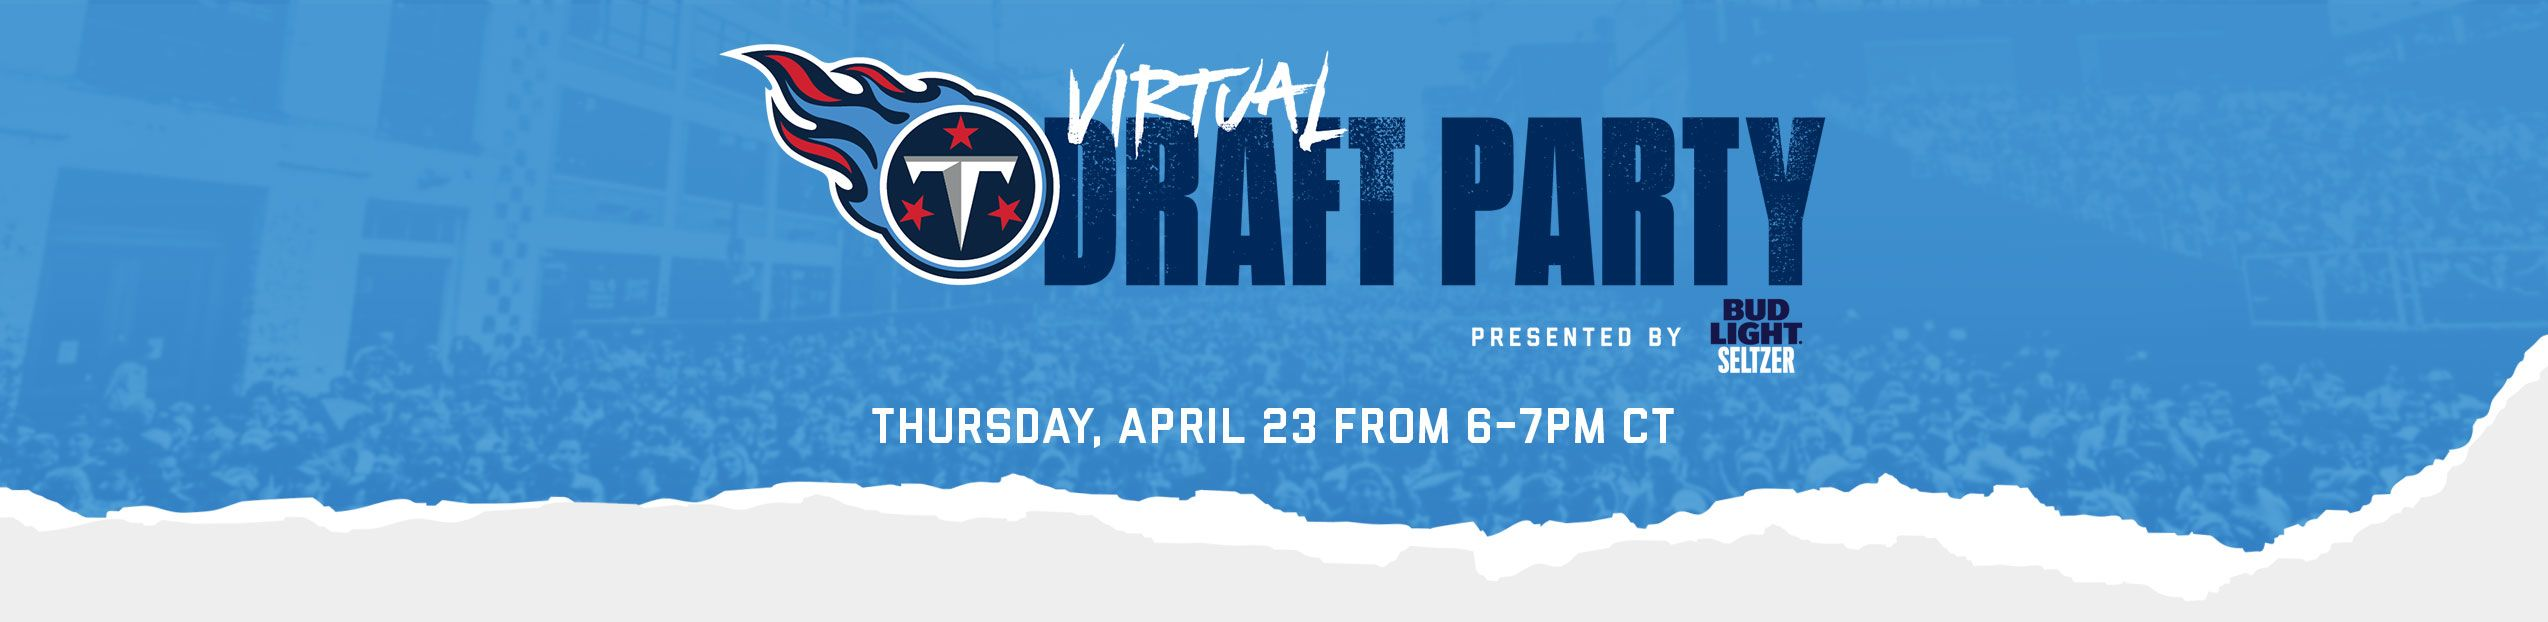 2020-virtual-draft-party-hdr-3